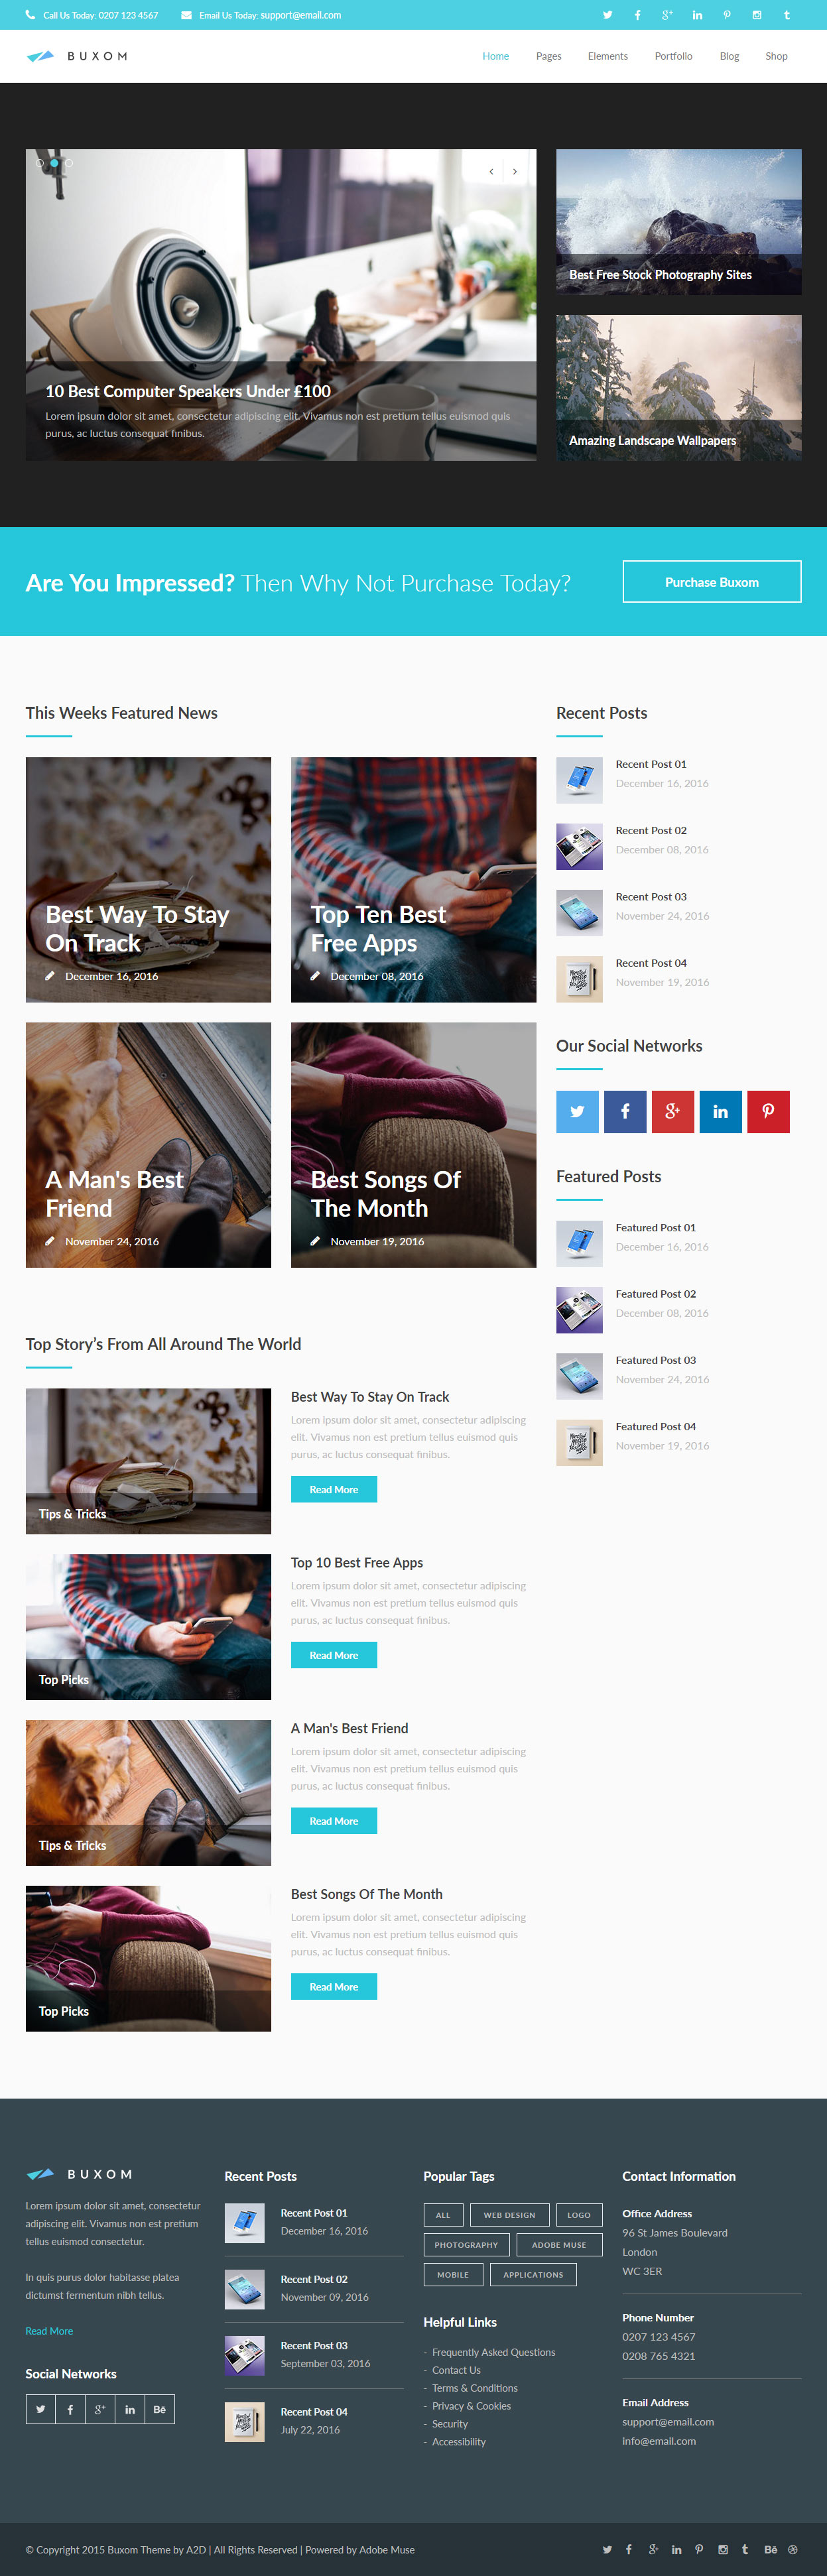 Best News And Magazine Muse Templates In 2015 Responsive Miracle